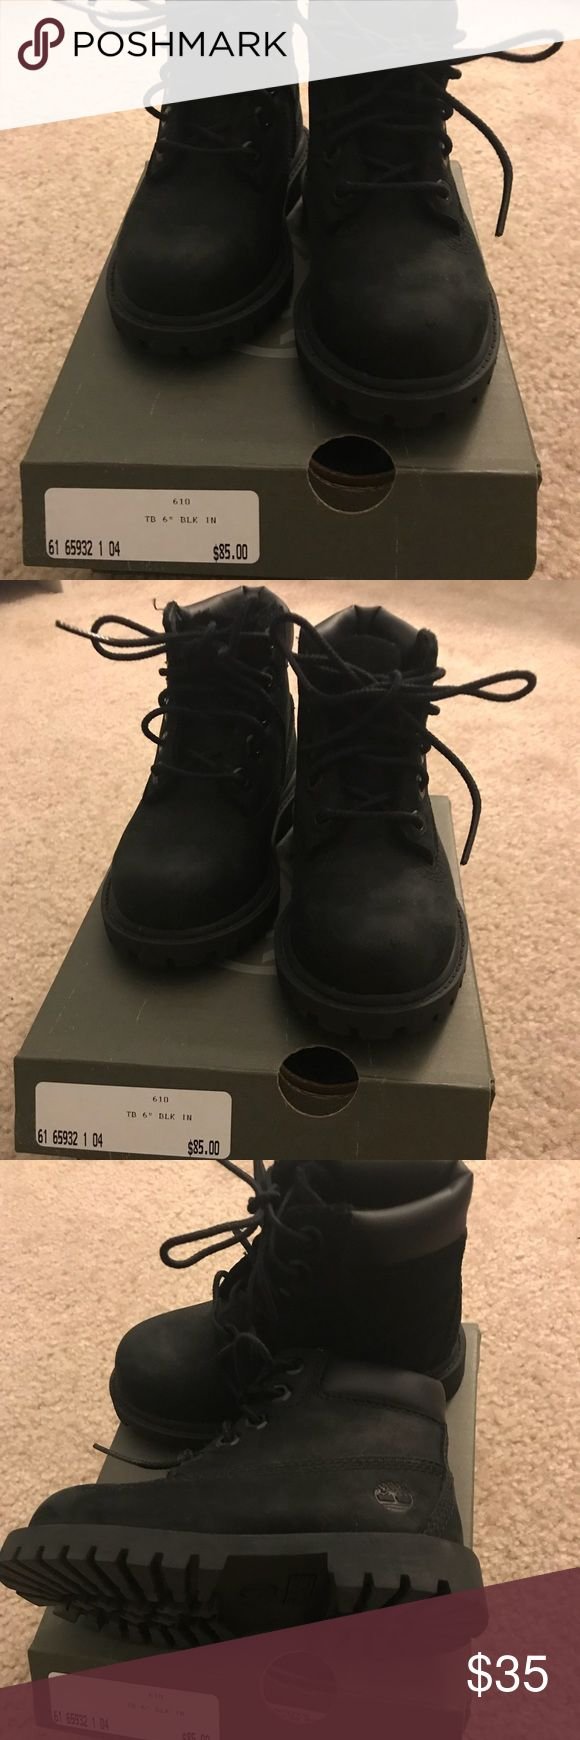 Toddler boy size 7 Timberland black boots Gently worn toddler size 7 Timberland boots in black suede. Great for the winter and with the snow! Timberland Shoes Boots